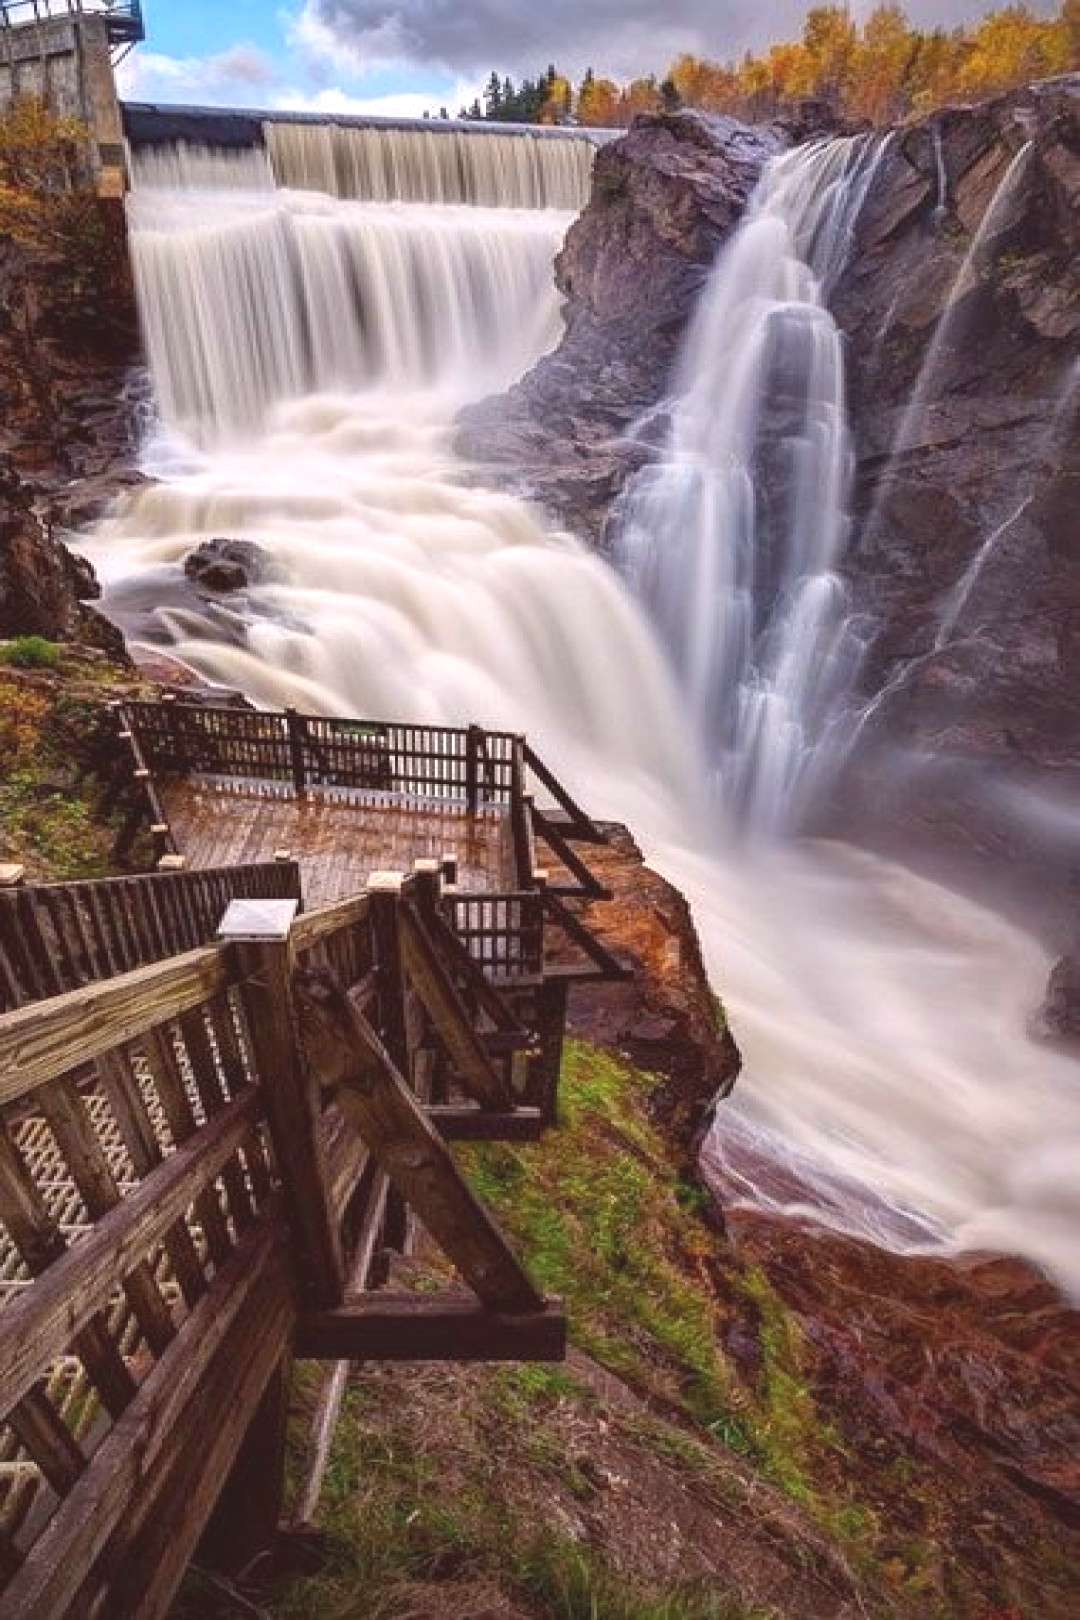 The Broadmoor Seven Falls in Colorado Springs is a series of seven cascading waterfalls, reaching a